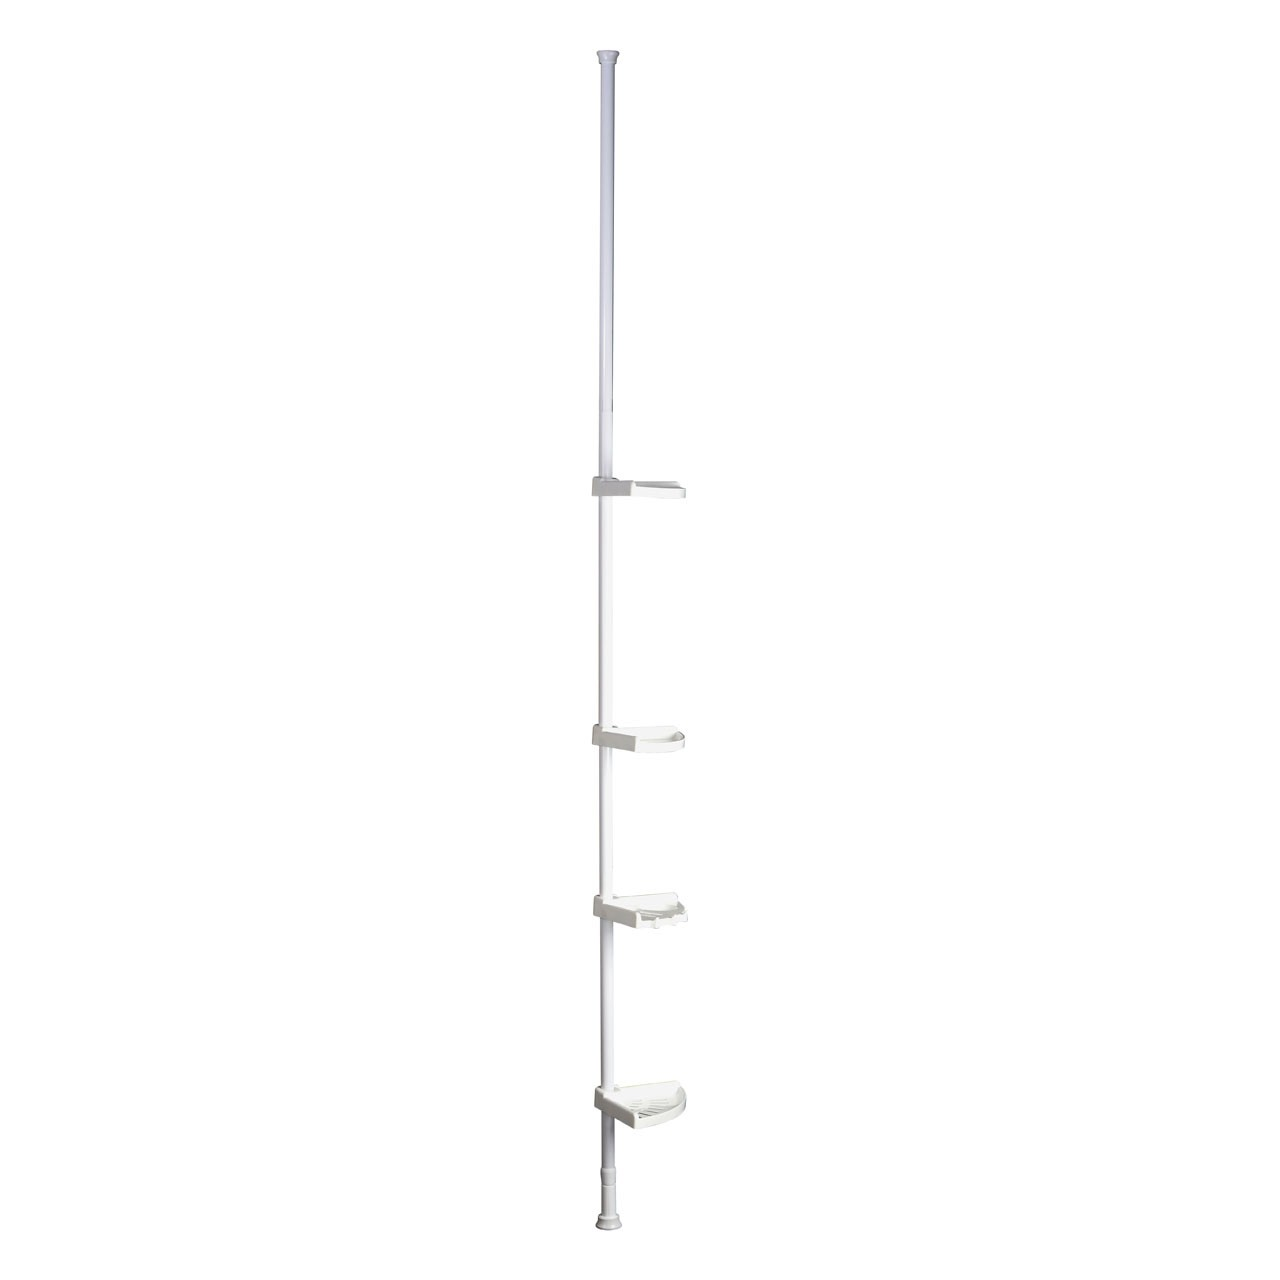 Prime Furnishing 4-Tier Corner Shelf - White